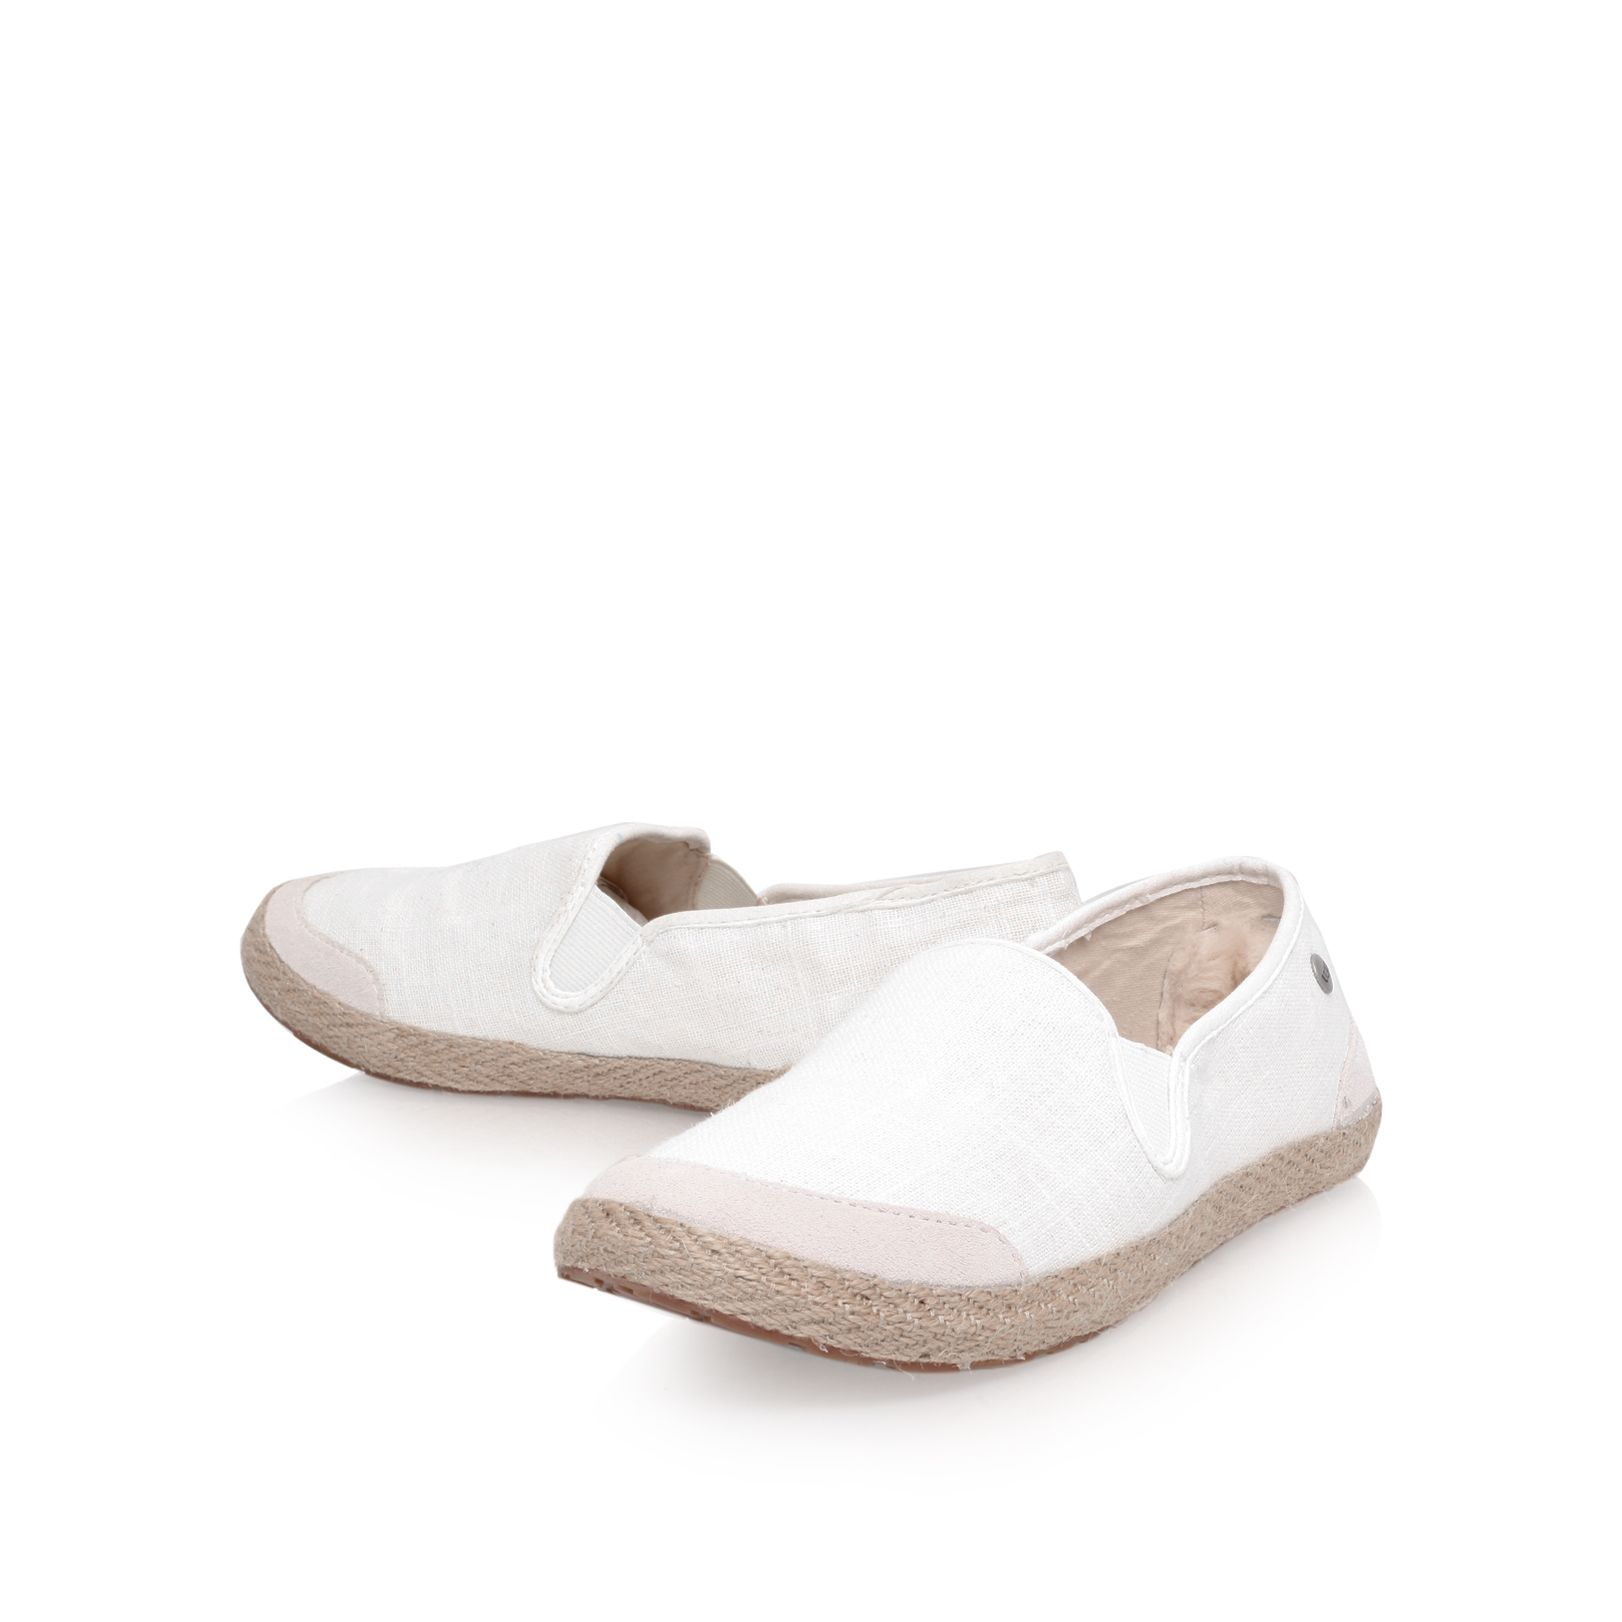 Delizah espadrille shoes